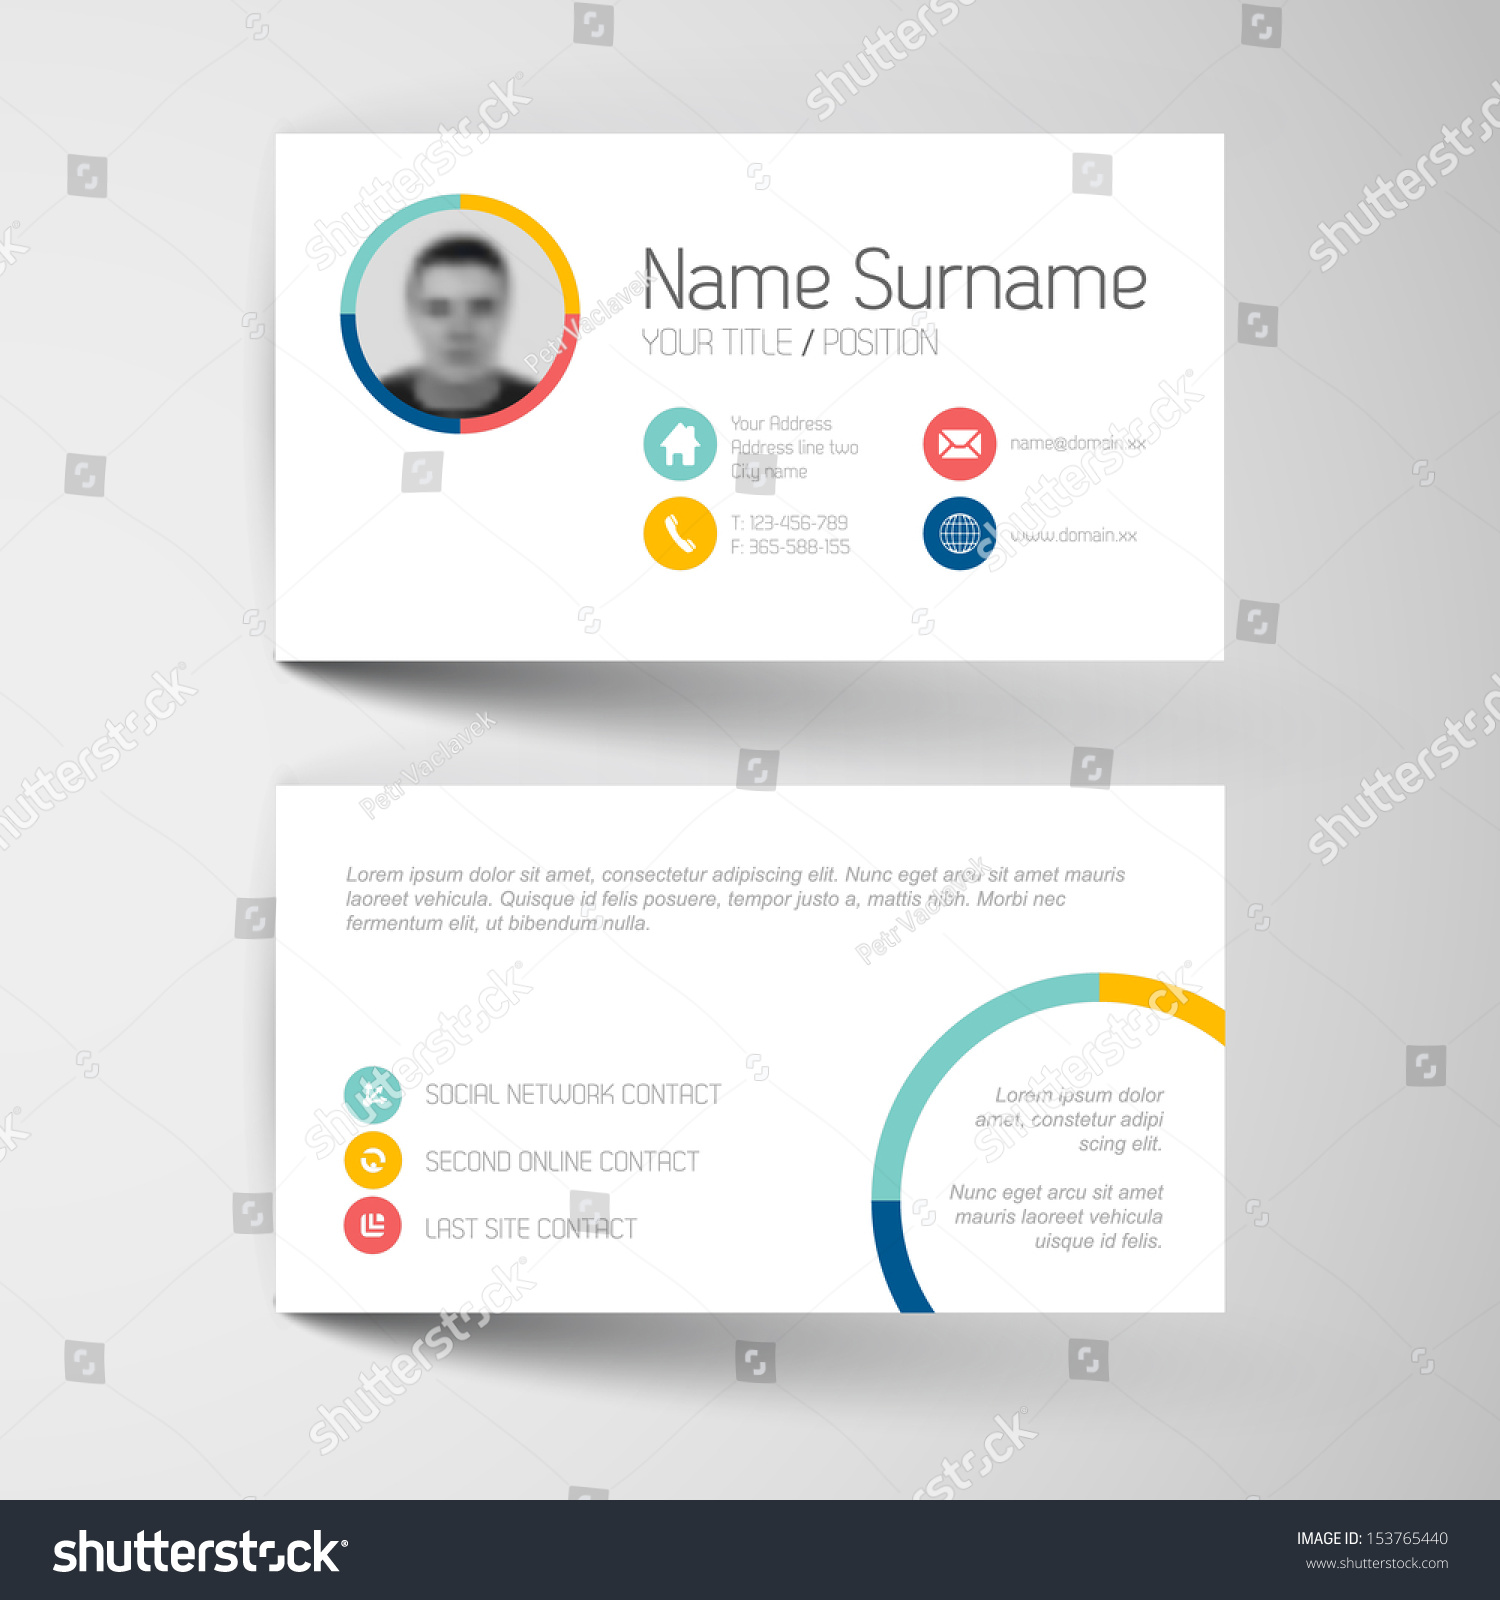 Business Card Online Template